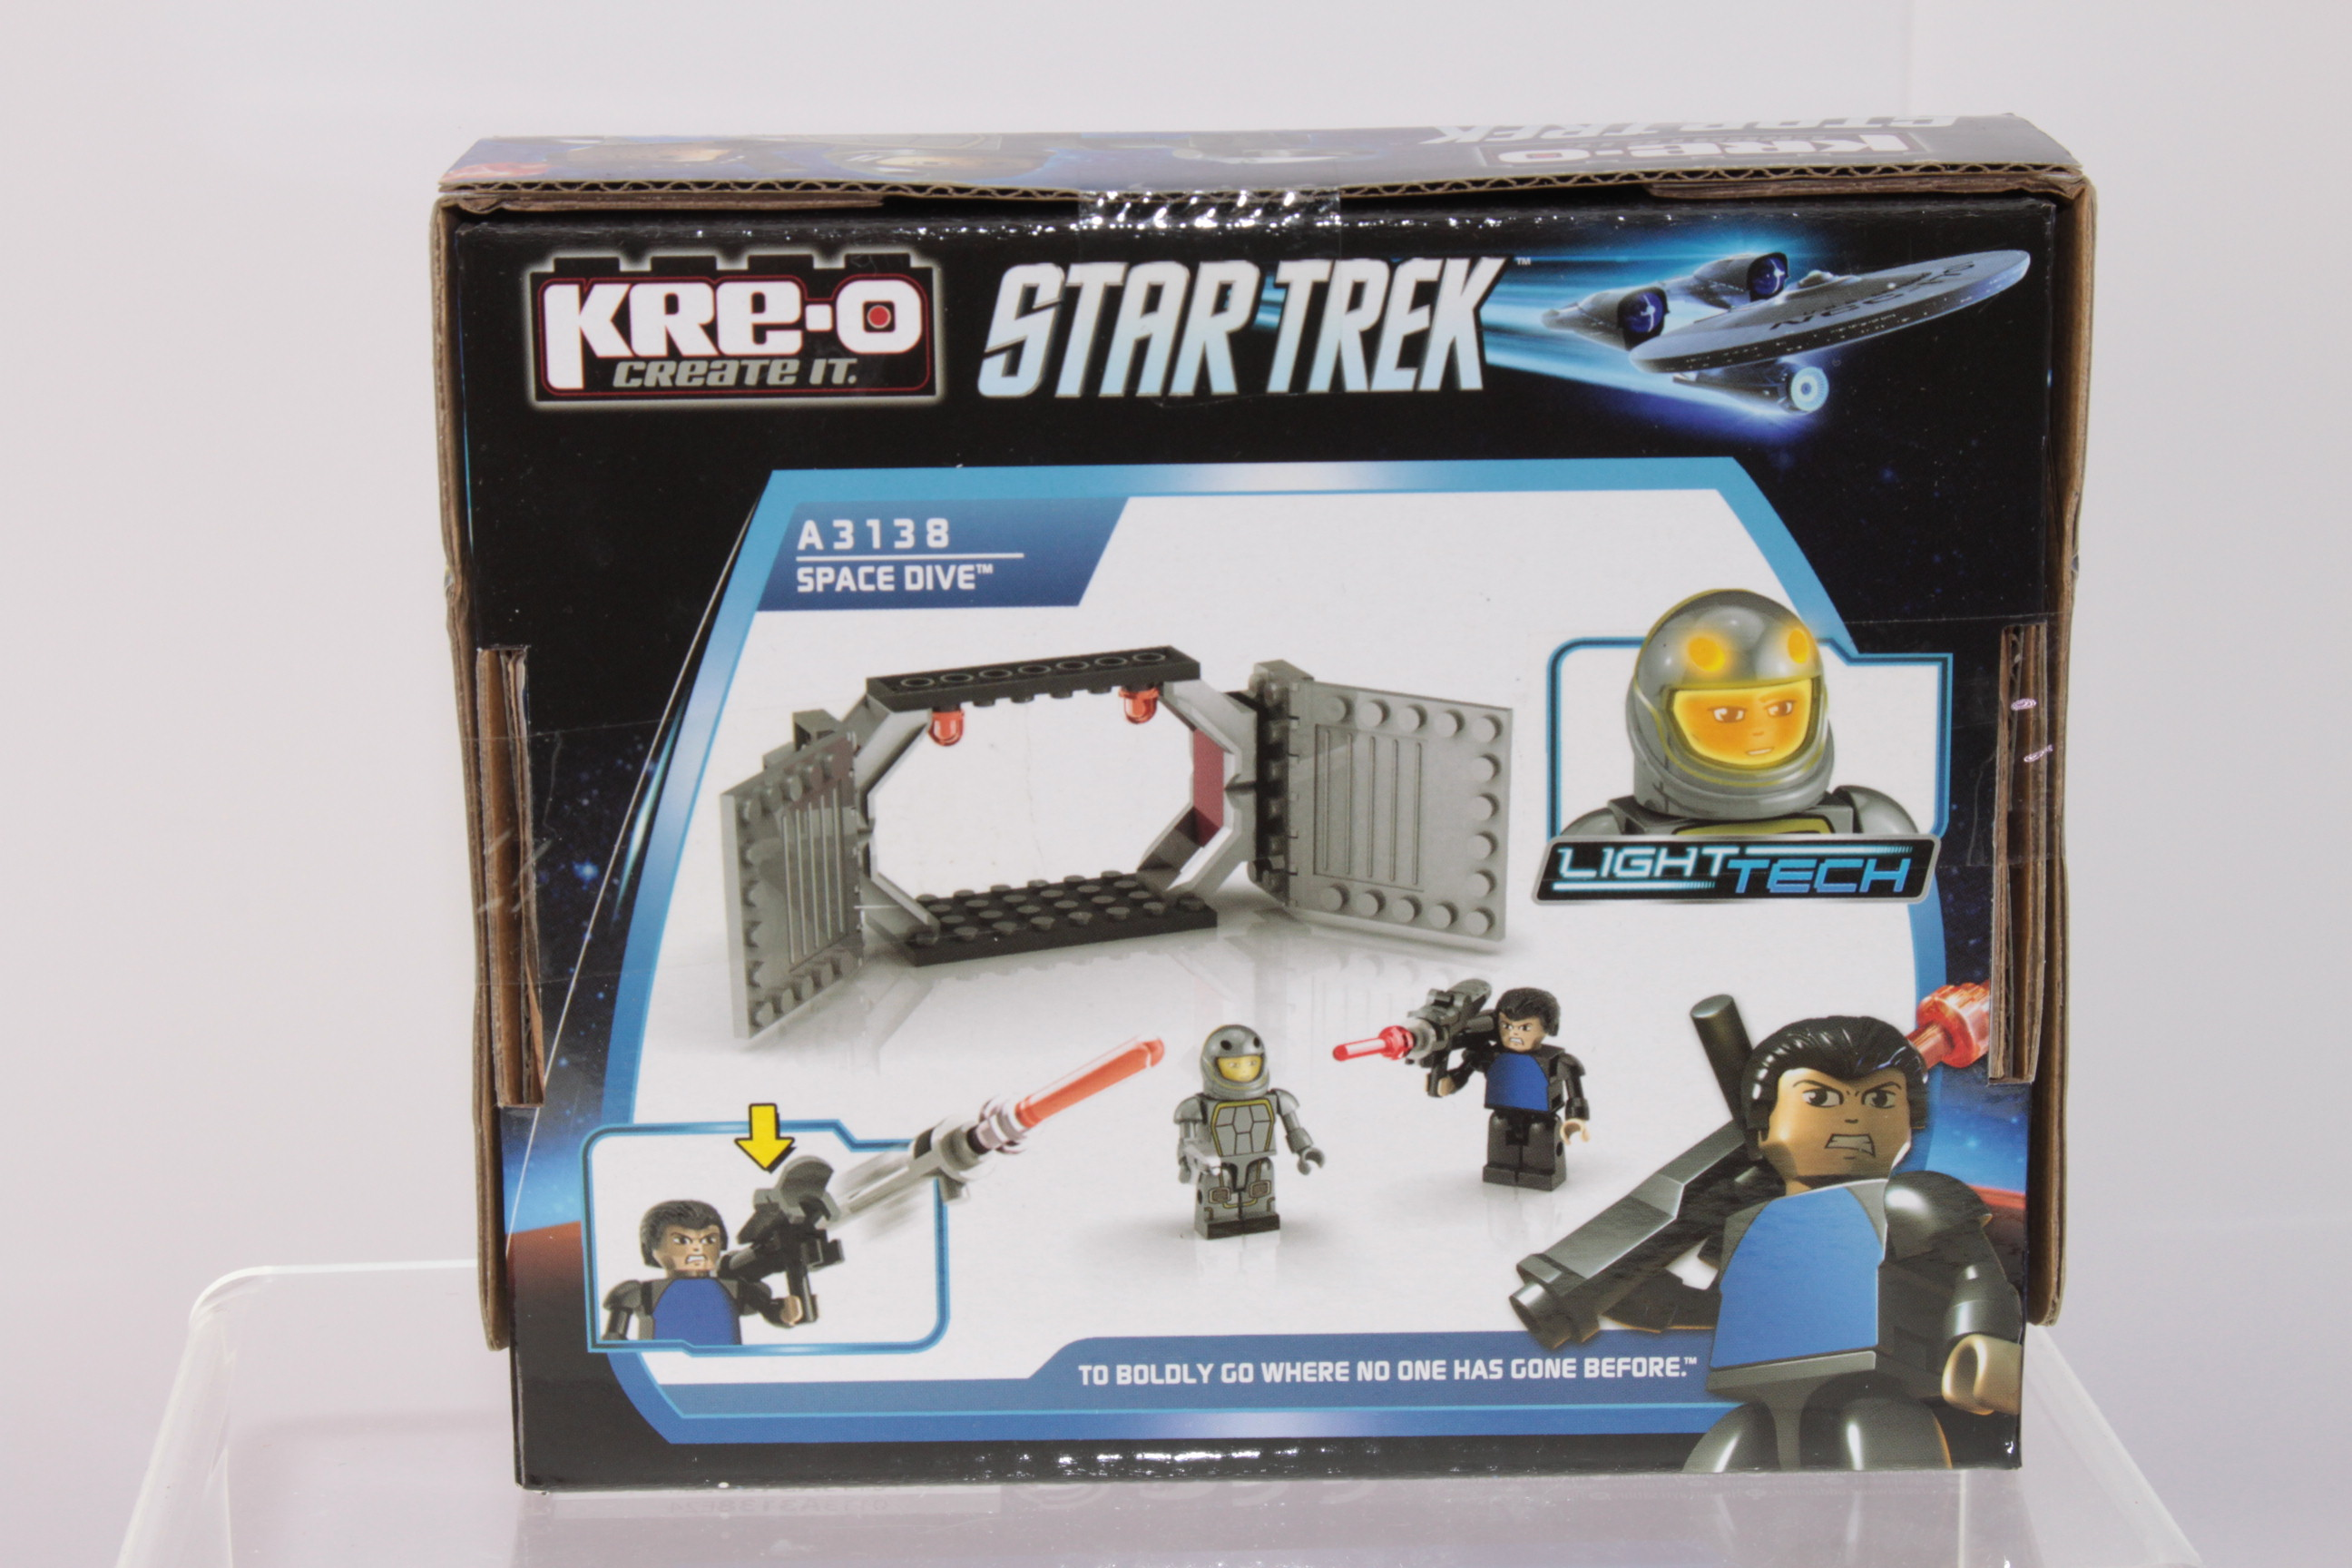 Picture Gallery for Kre-o A3138 Space Dive